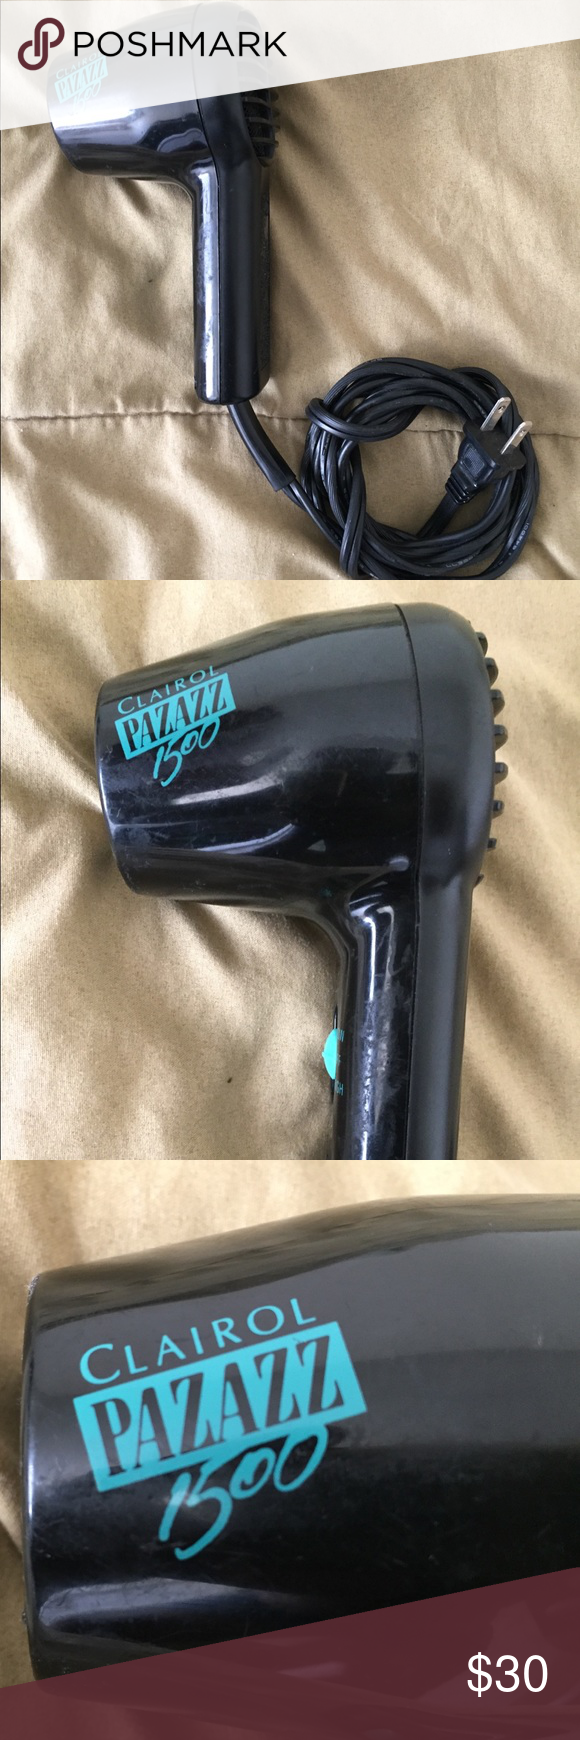 Clairol Pazazz 1500 Hand Hair Blow Dryer Compact 100